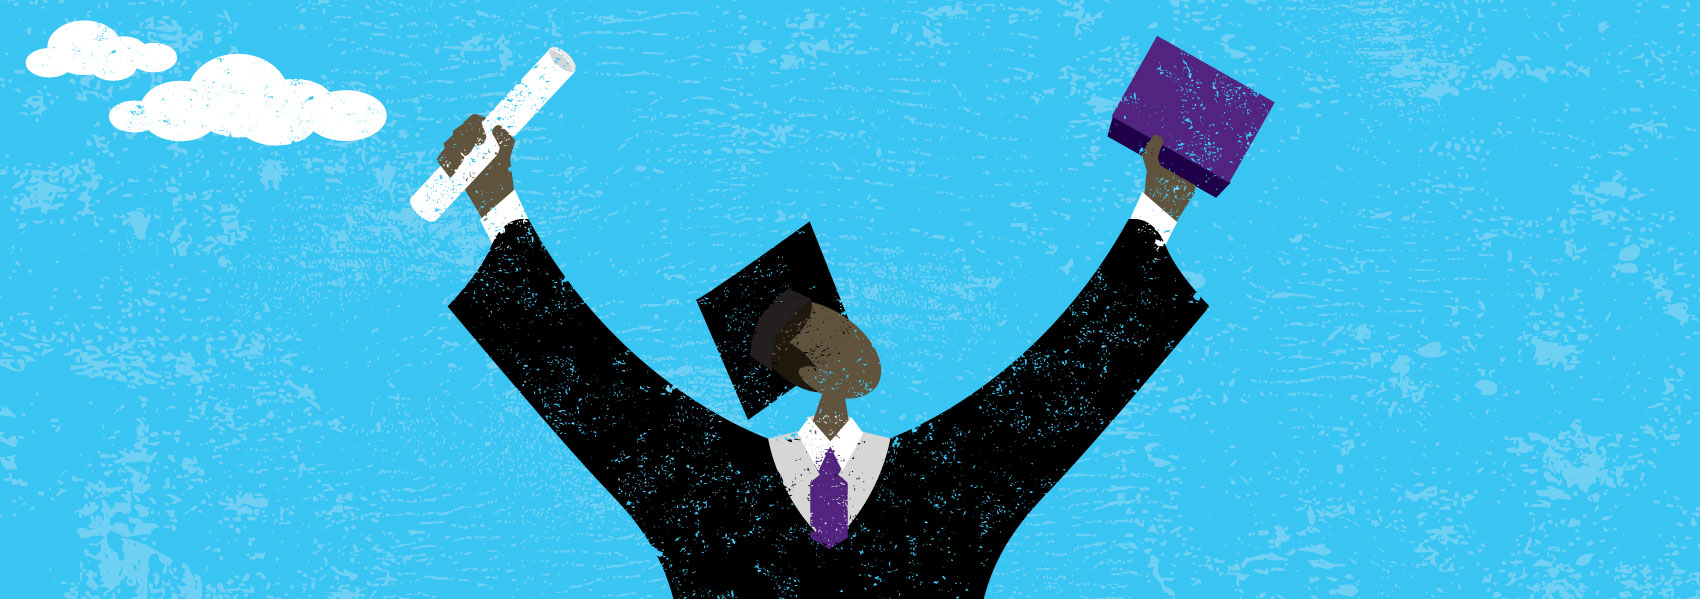 An illustration of a graduate celebrating wtih a diploma and book held to the sky